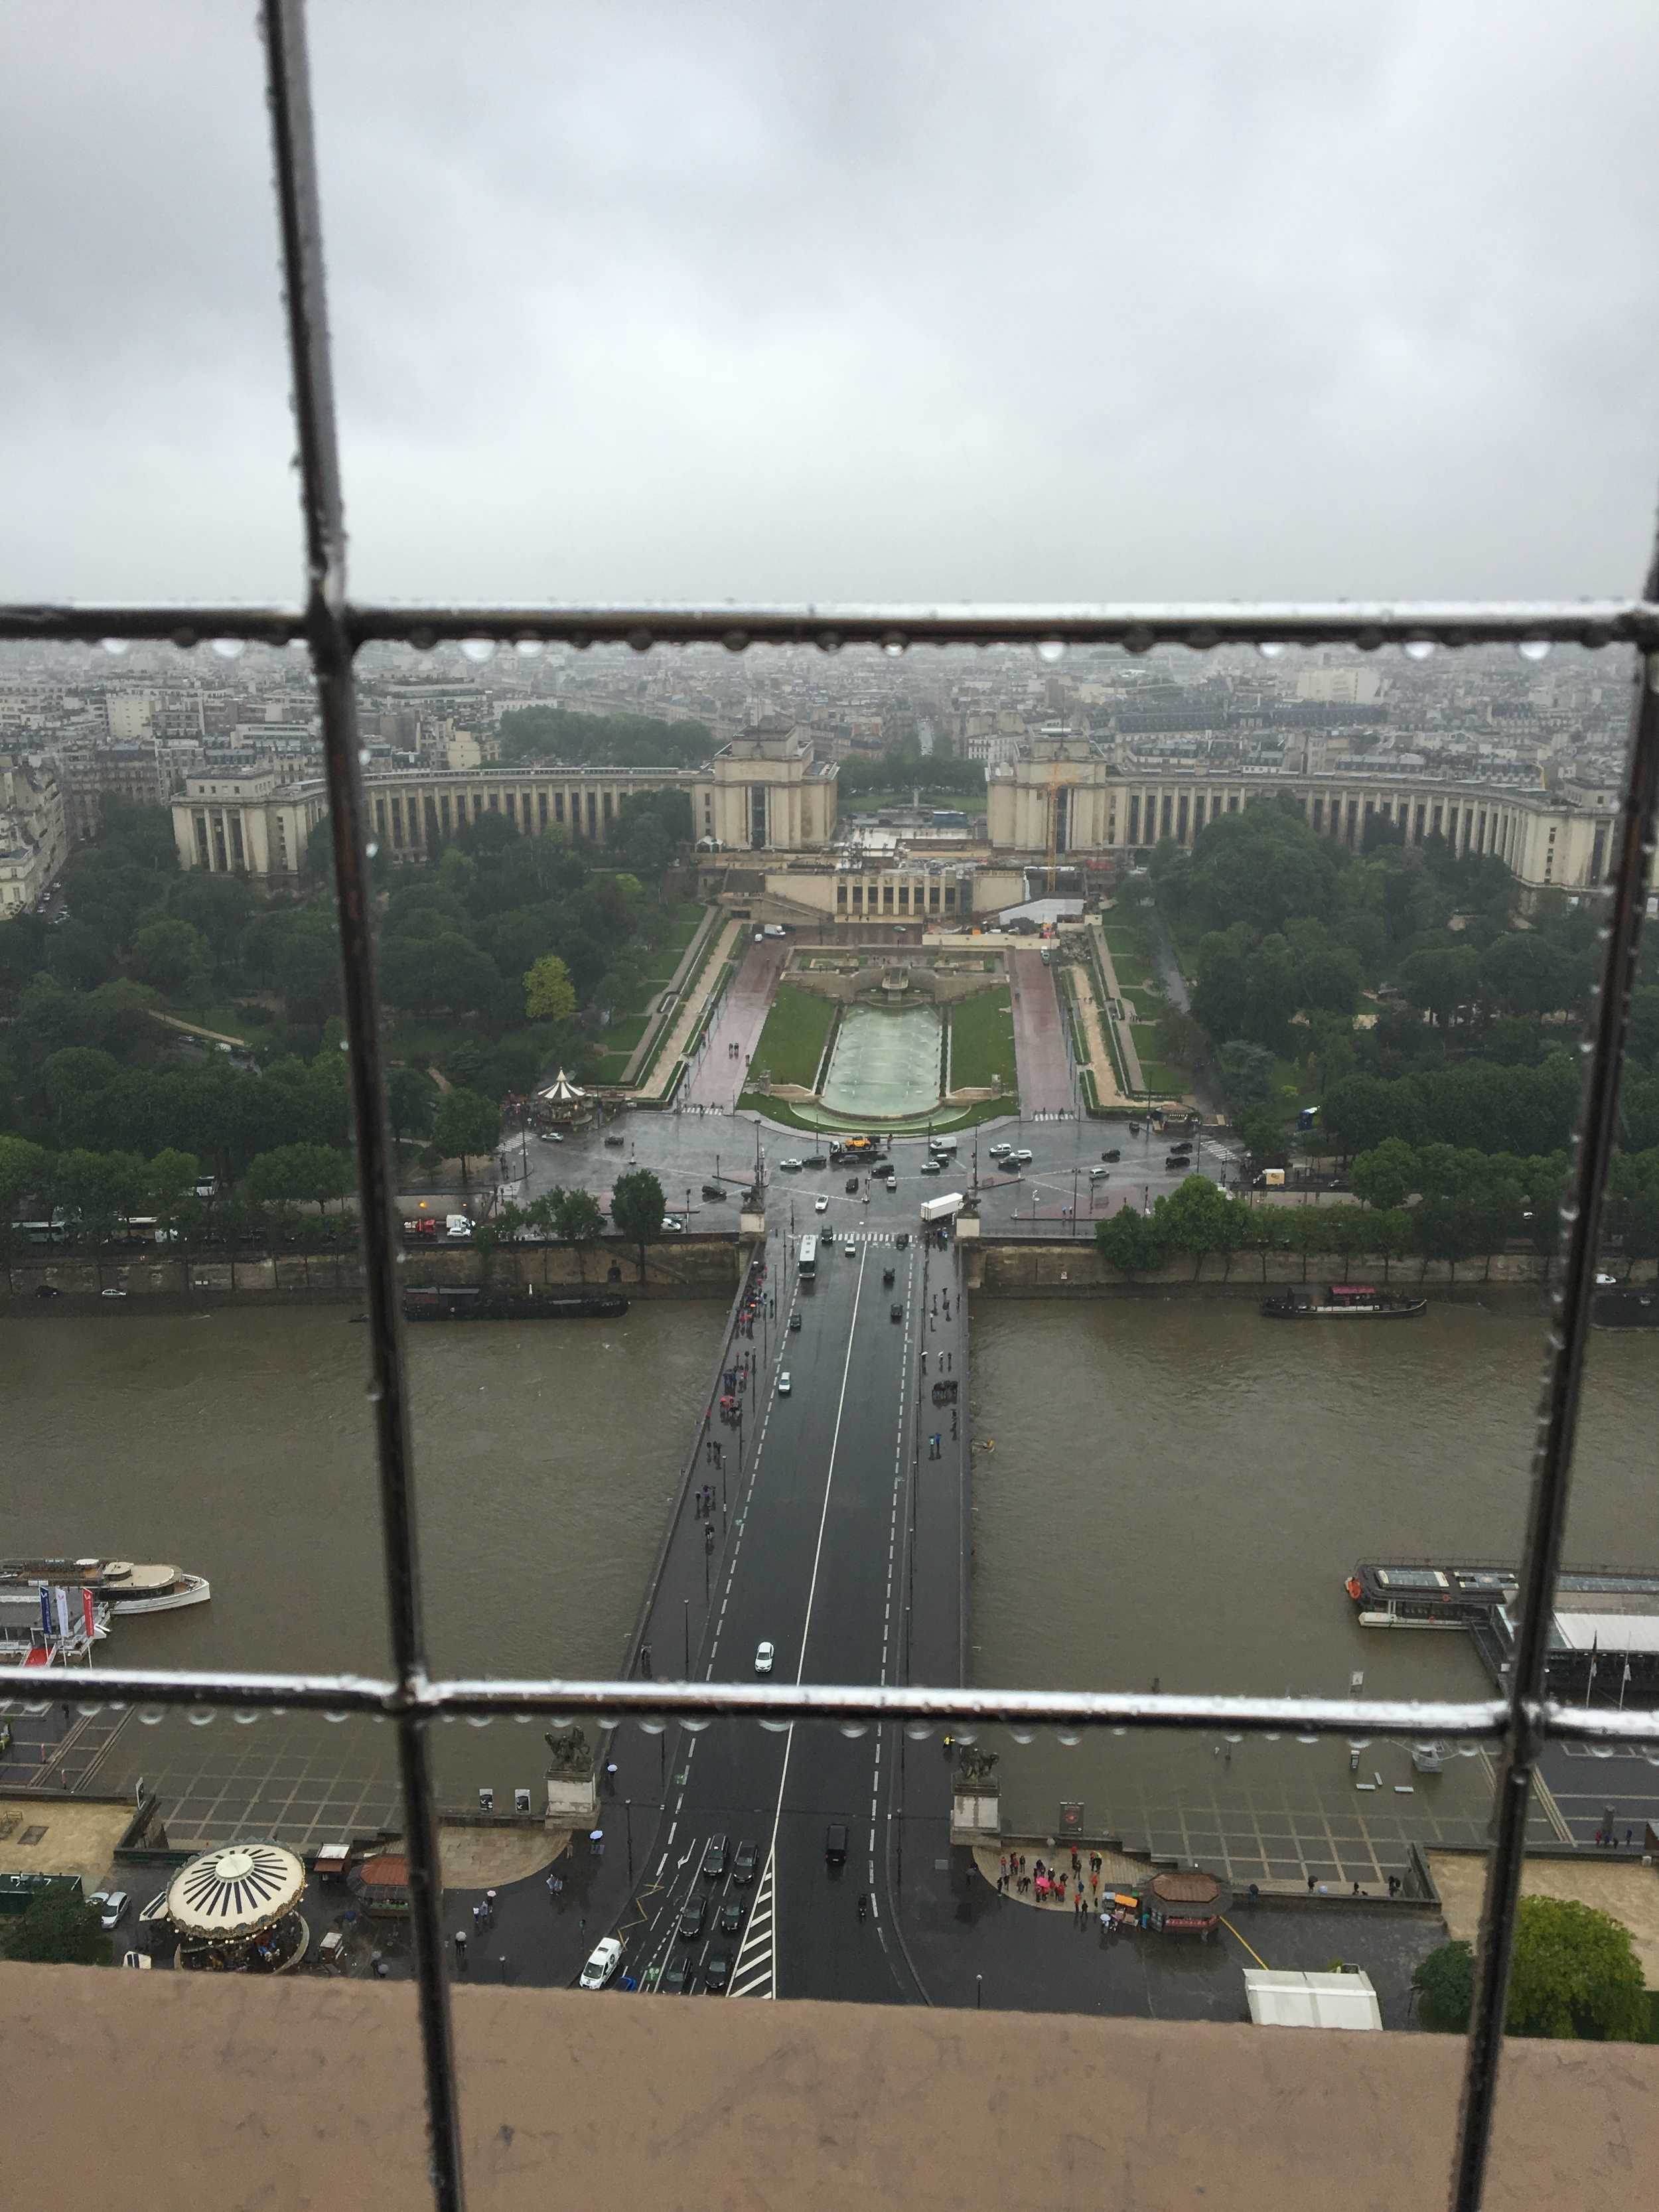 A view of Trocadero form the second stage of the Eiffel Tower